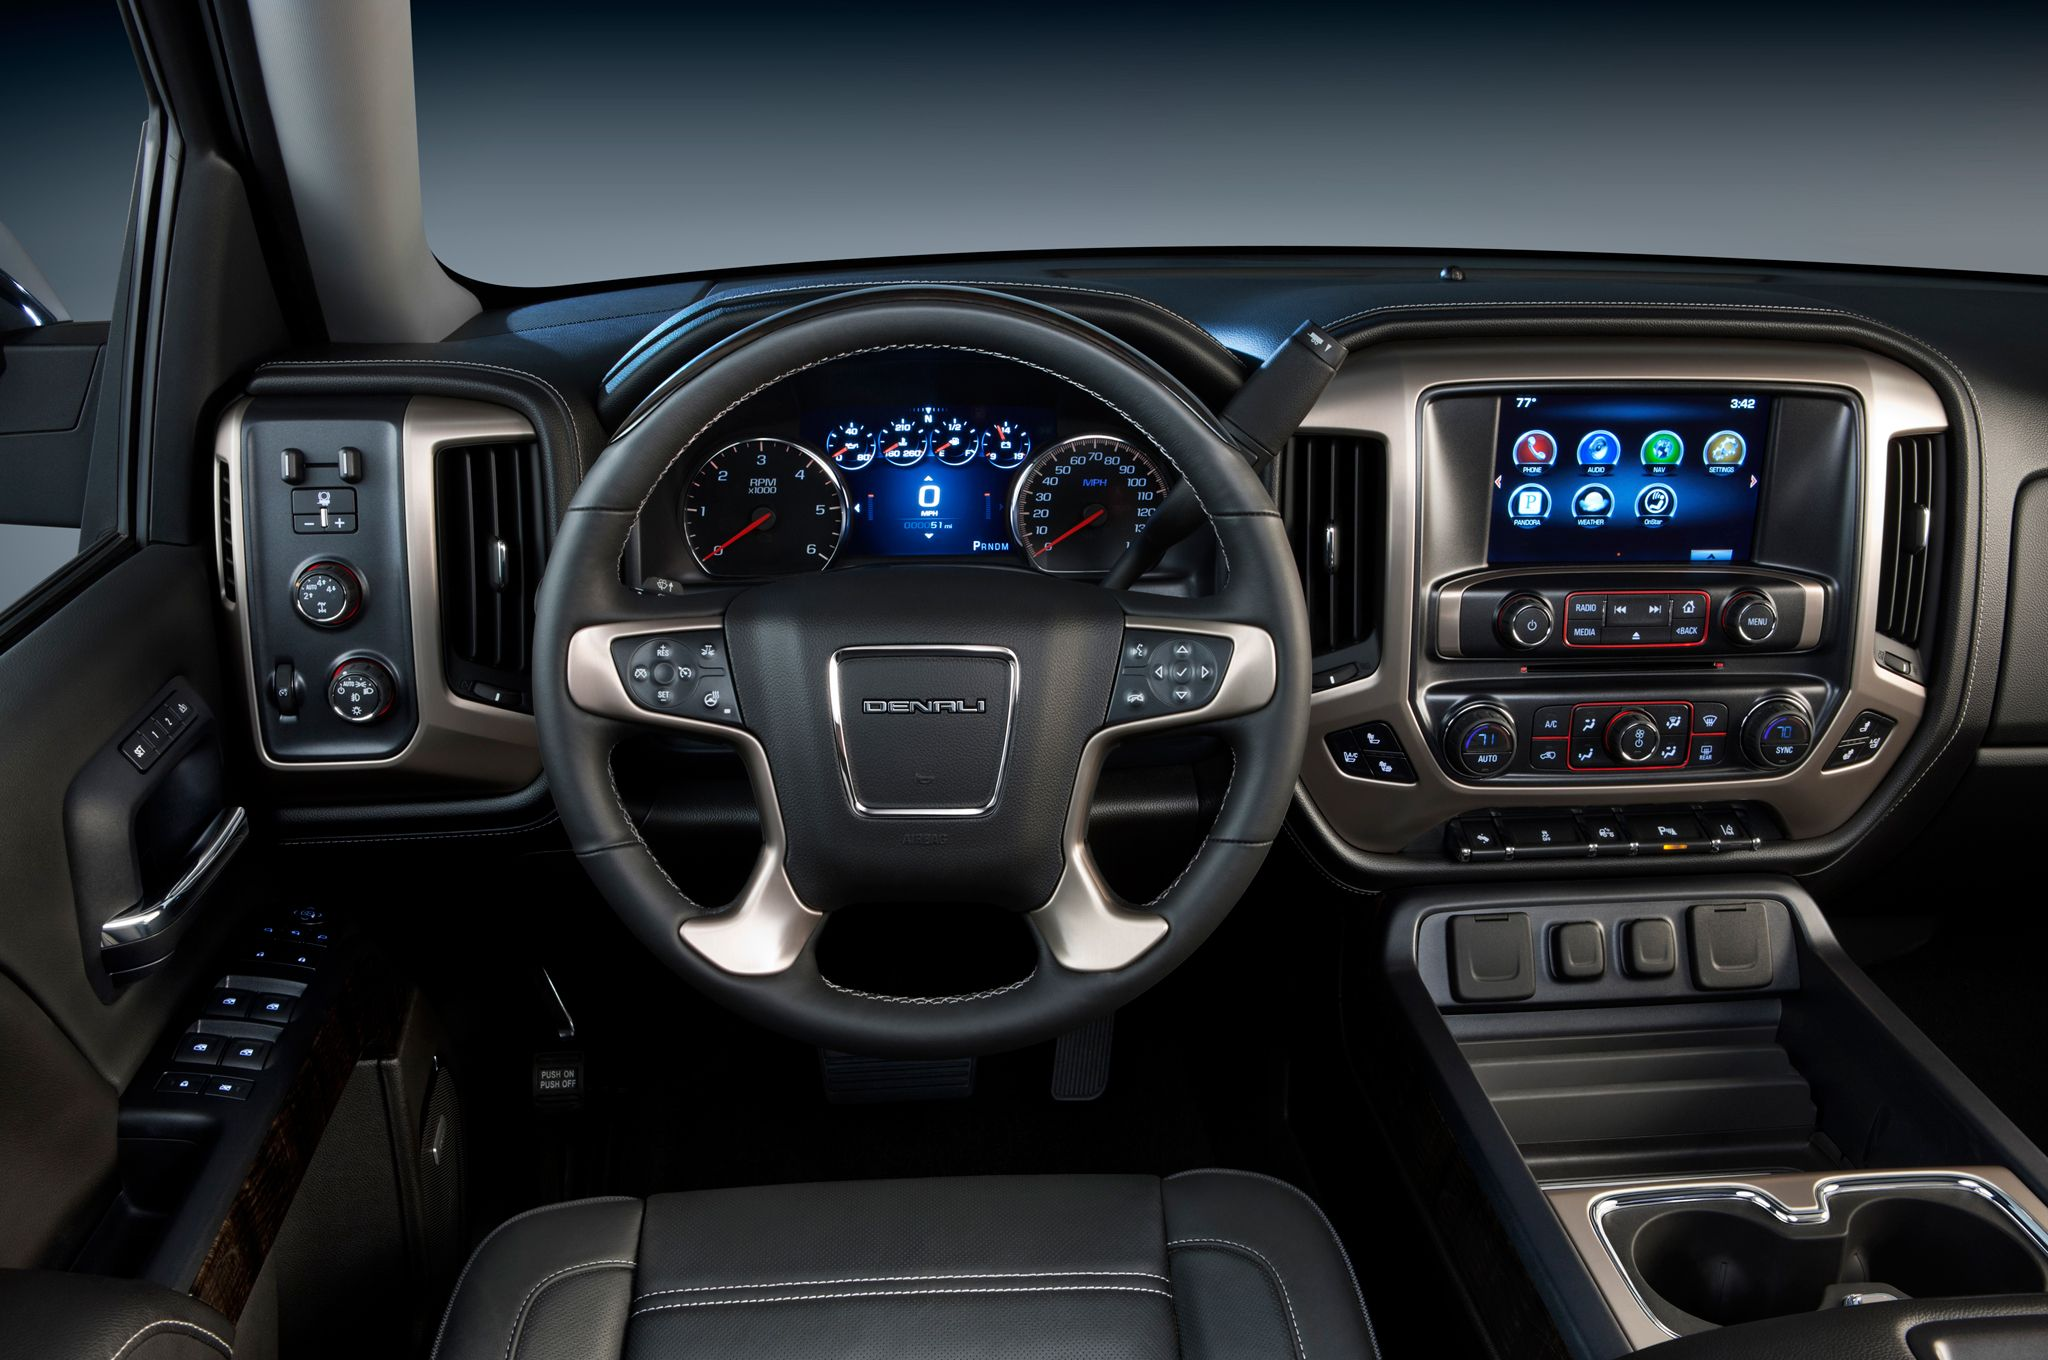 Learn more about the wardsauto award given for the best interiors of and why the 2014 gmc sierra denali interior was honored